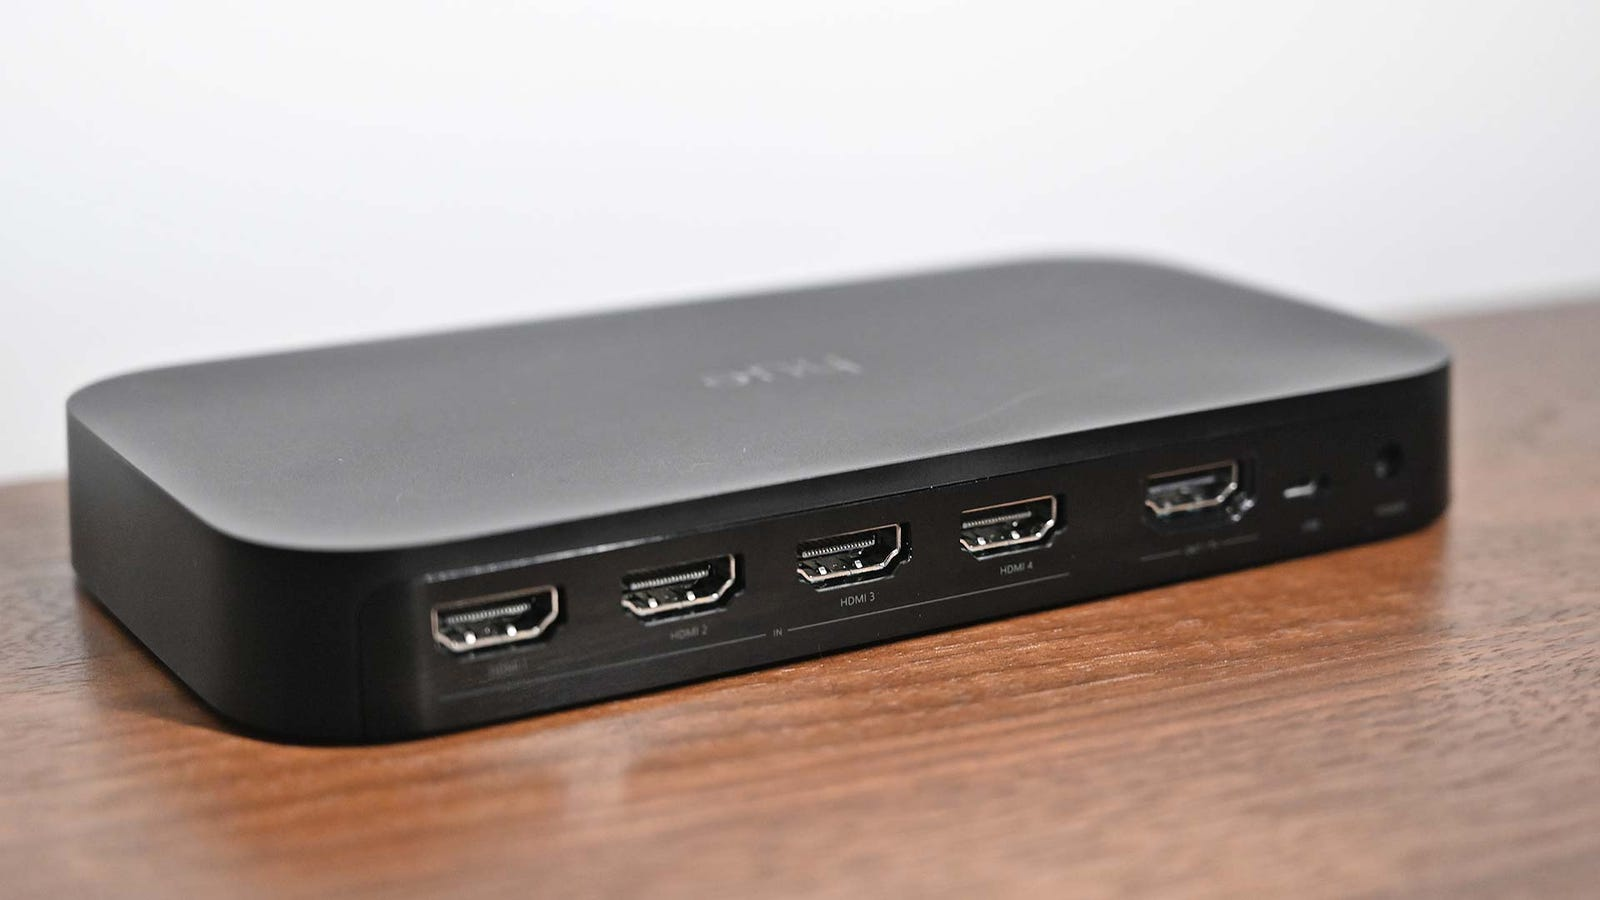 The Play Sync Box has four HDMI inputs and one HDMI out port.